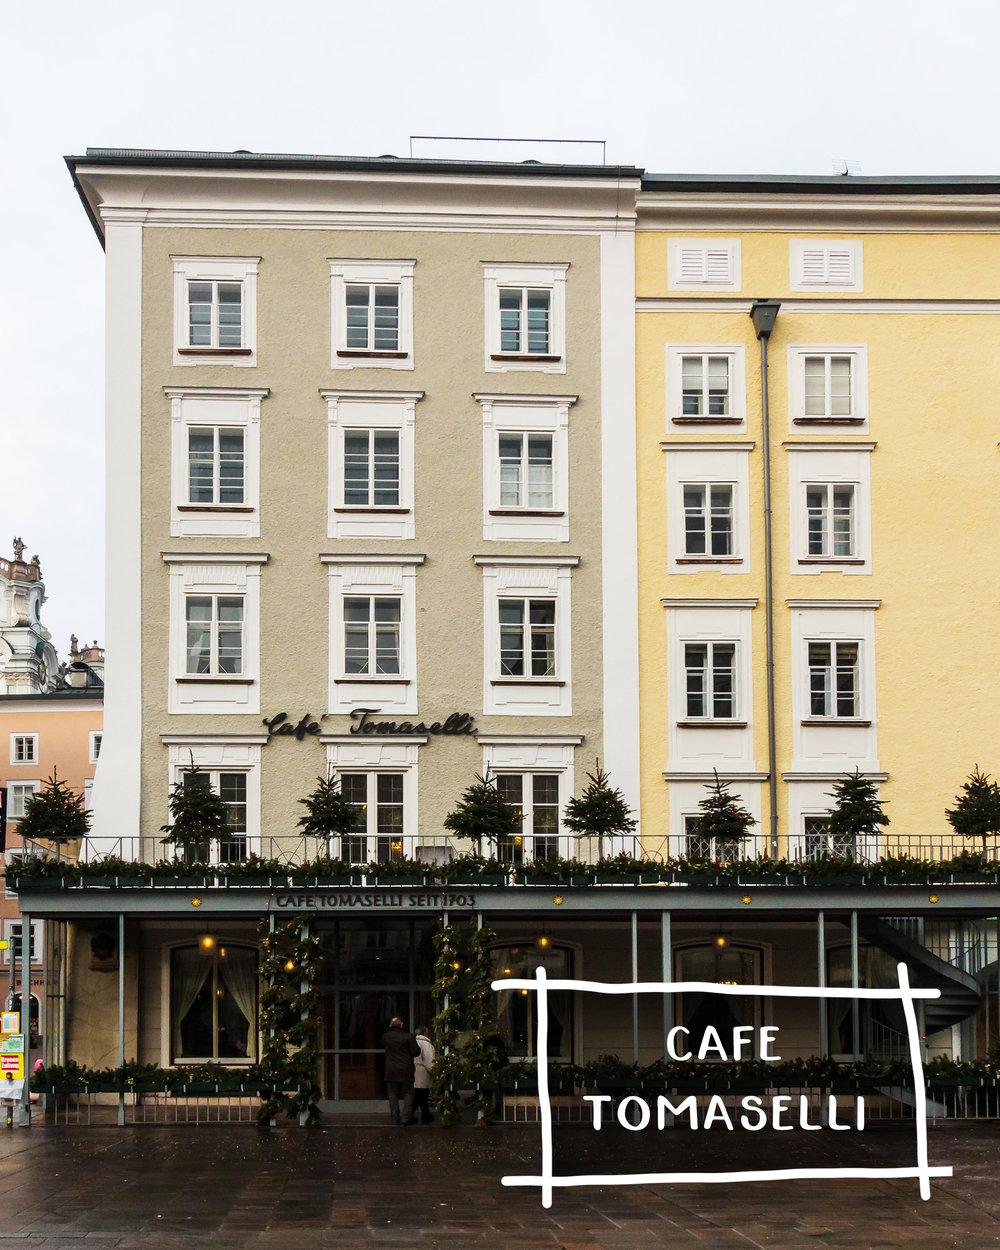 Five Restaurants In Europe For A Unique & Authentic Experience | Cafe Tomaselli, Salzburg Austria | Sea of Atlas